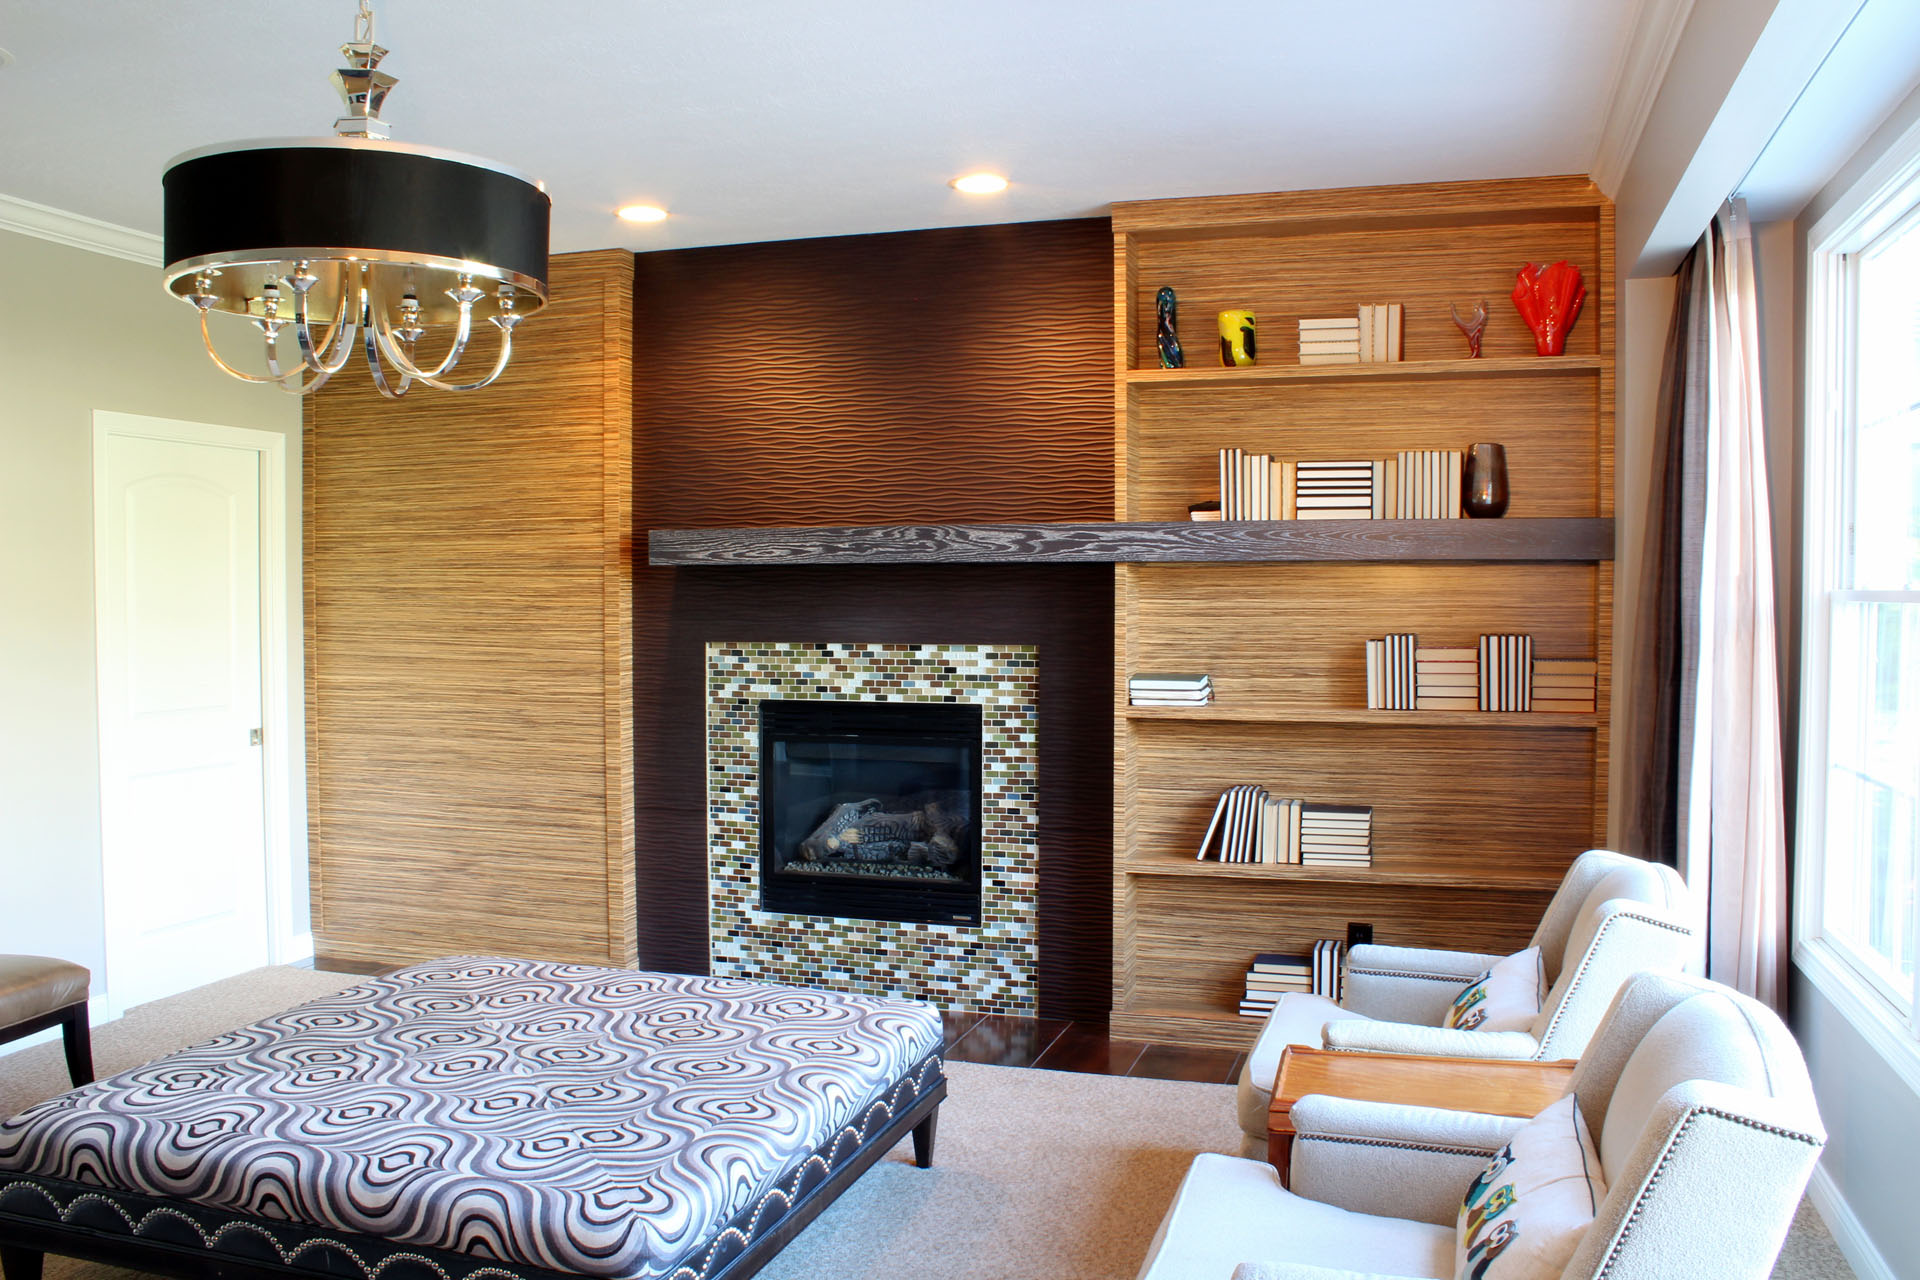 Westside Zebrawood Fireplace